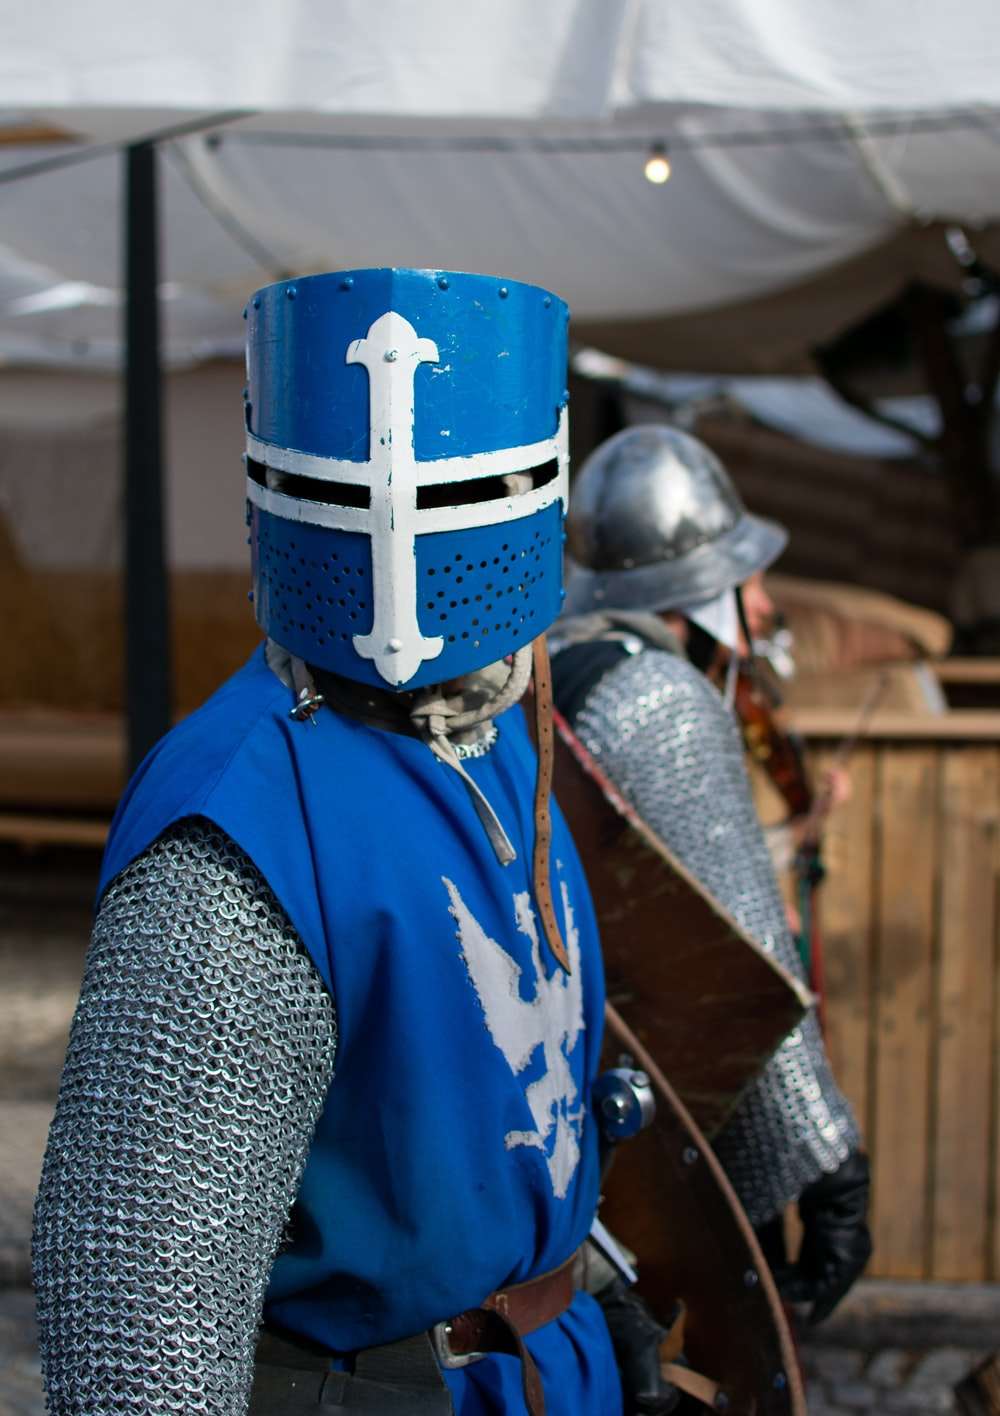 man wearing blue and grey costume